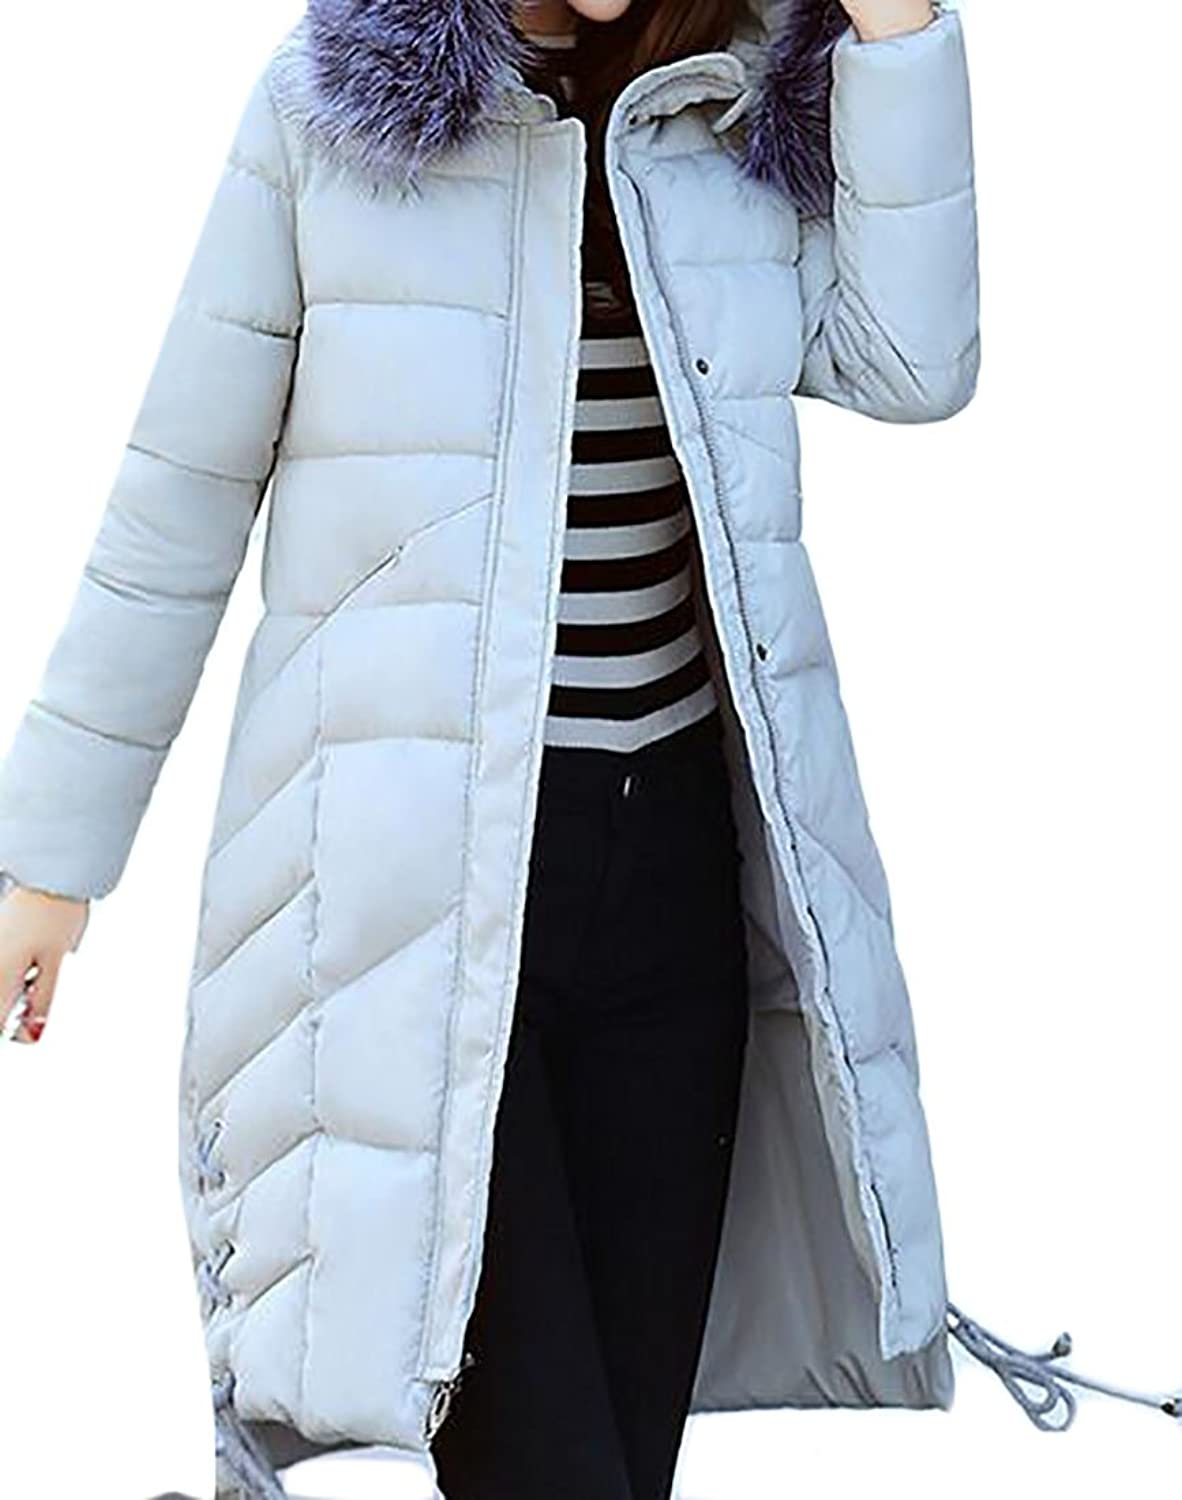 Oberora Women's Winter FauxFur Collar Tie Thick Padded Down Jackets Parka Coat